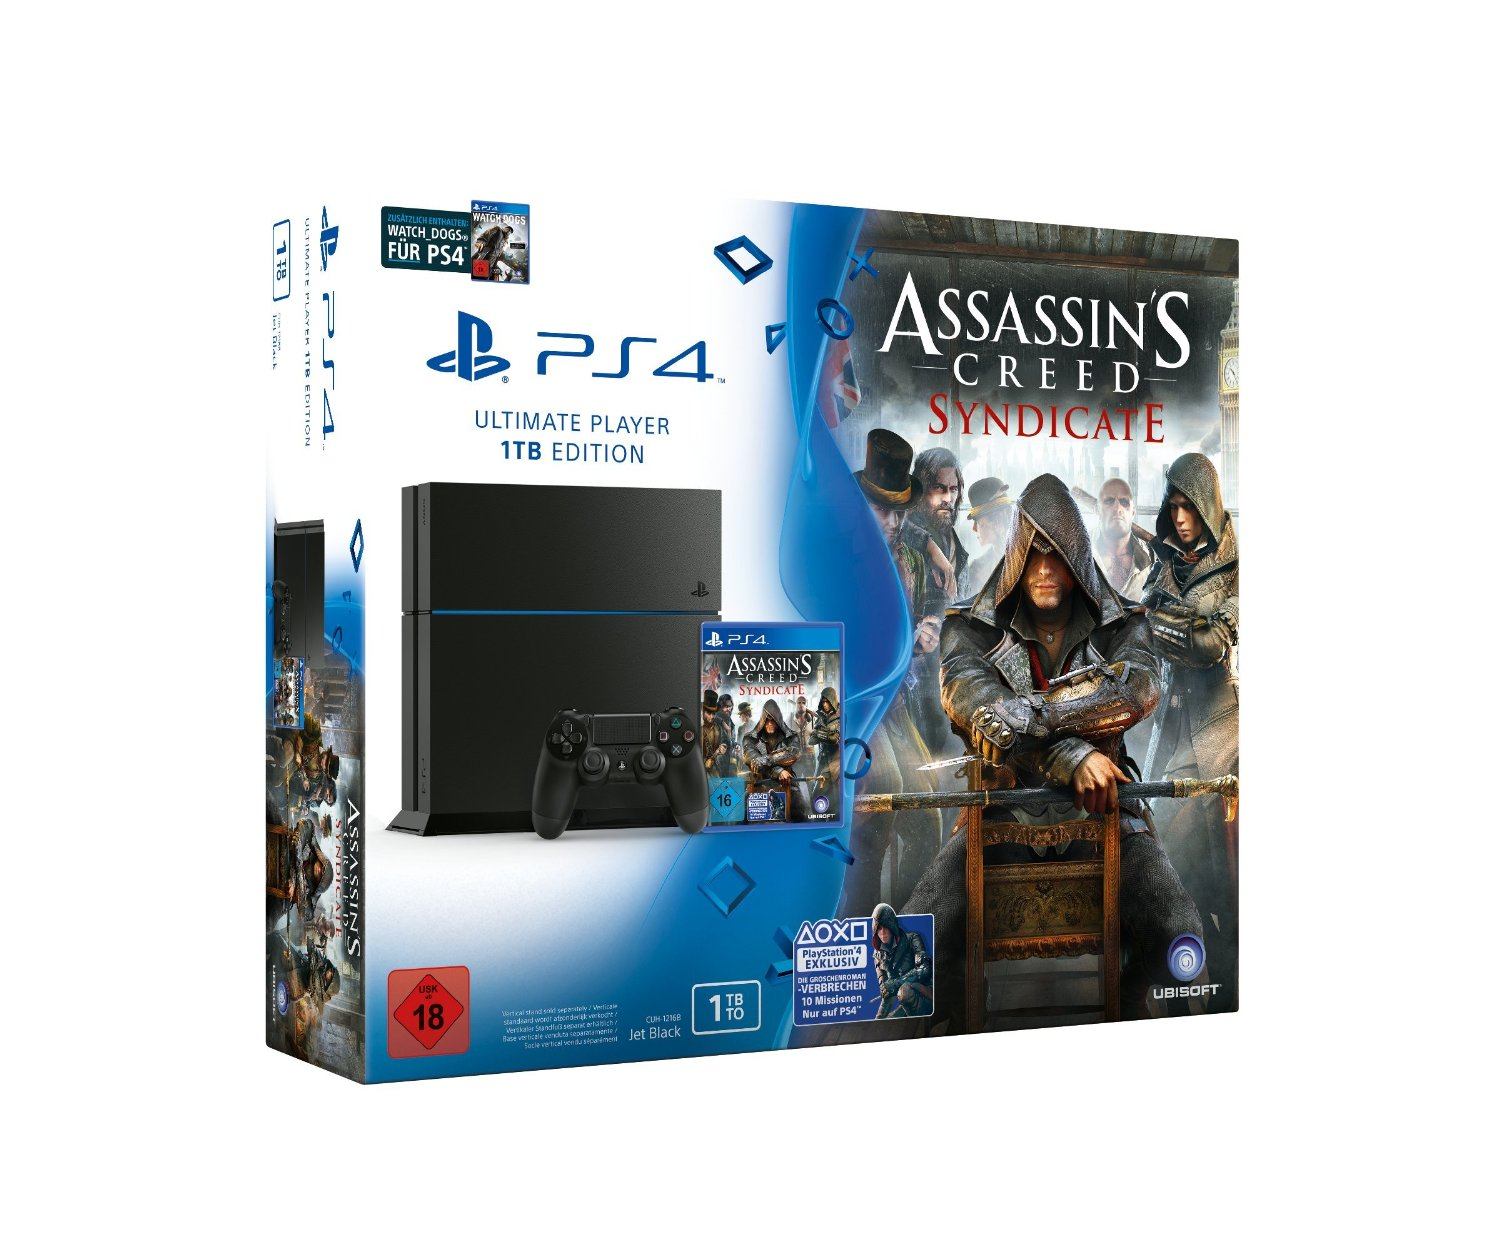 assassins creed unity bundle